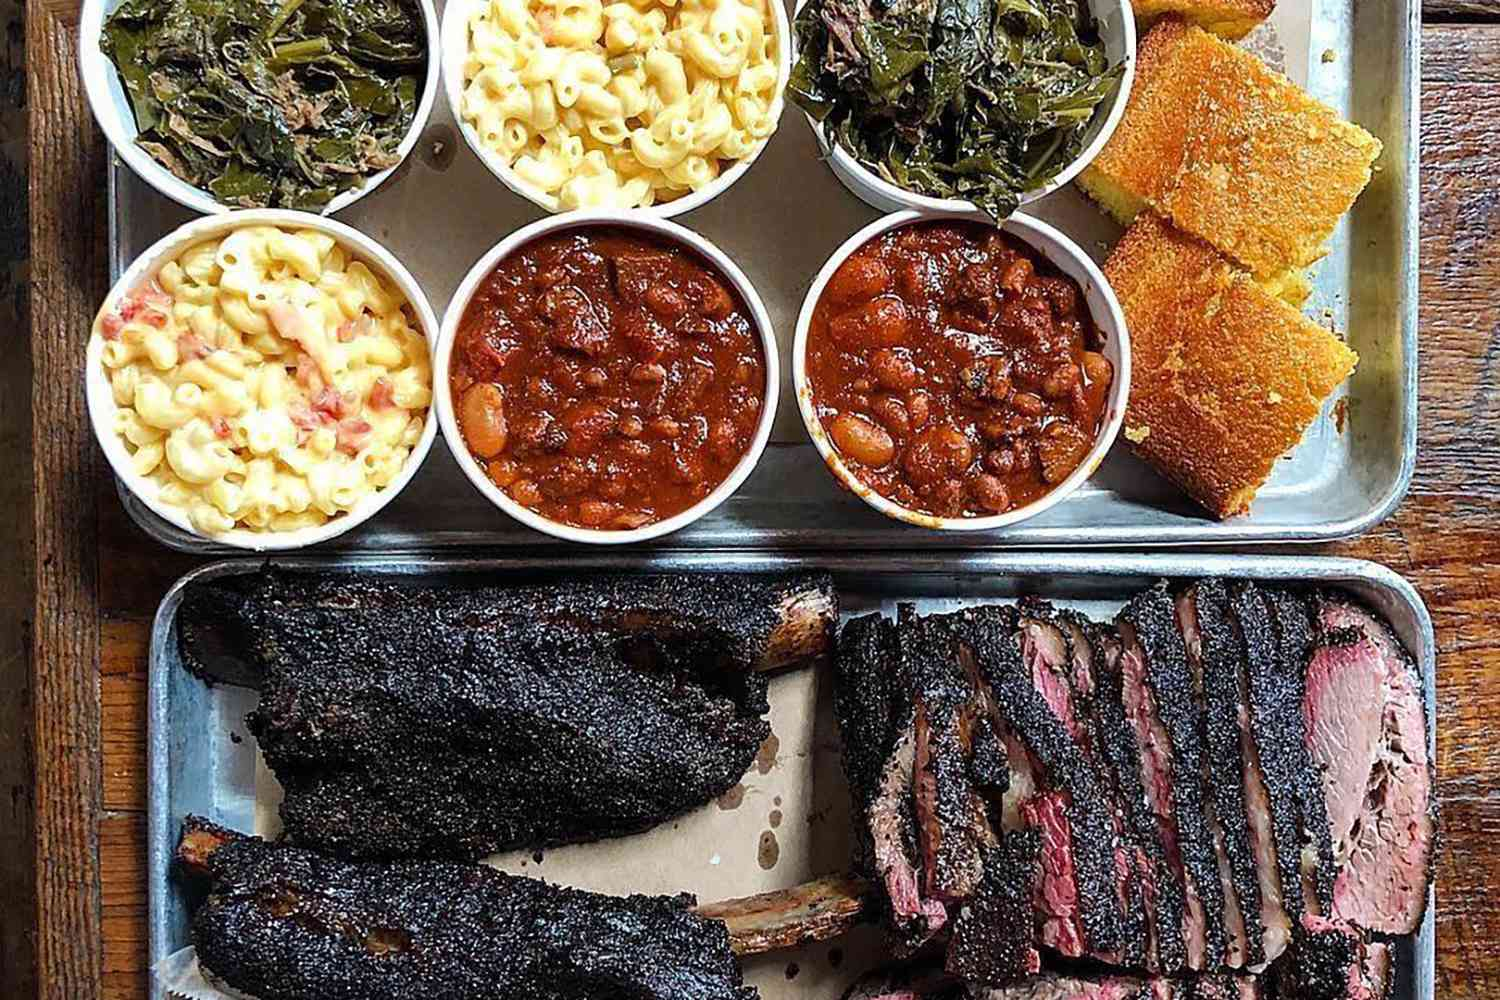 BBQ and an assortment of sides at Hometown Barbecue